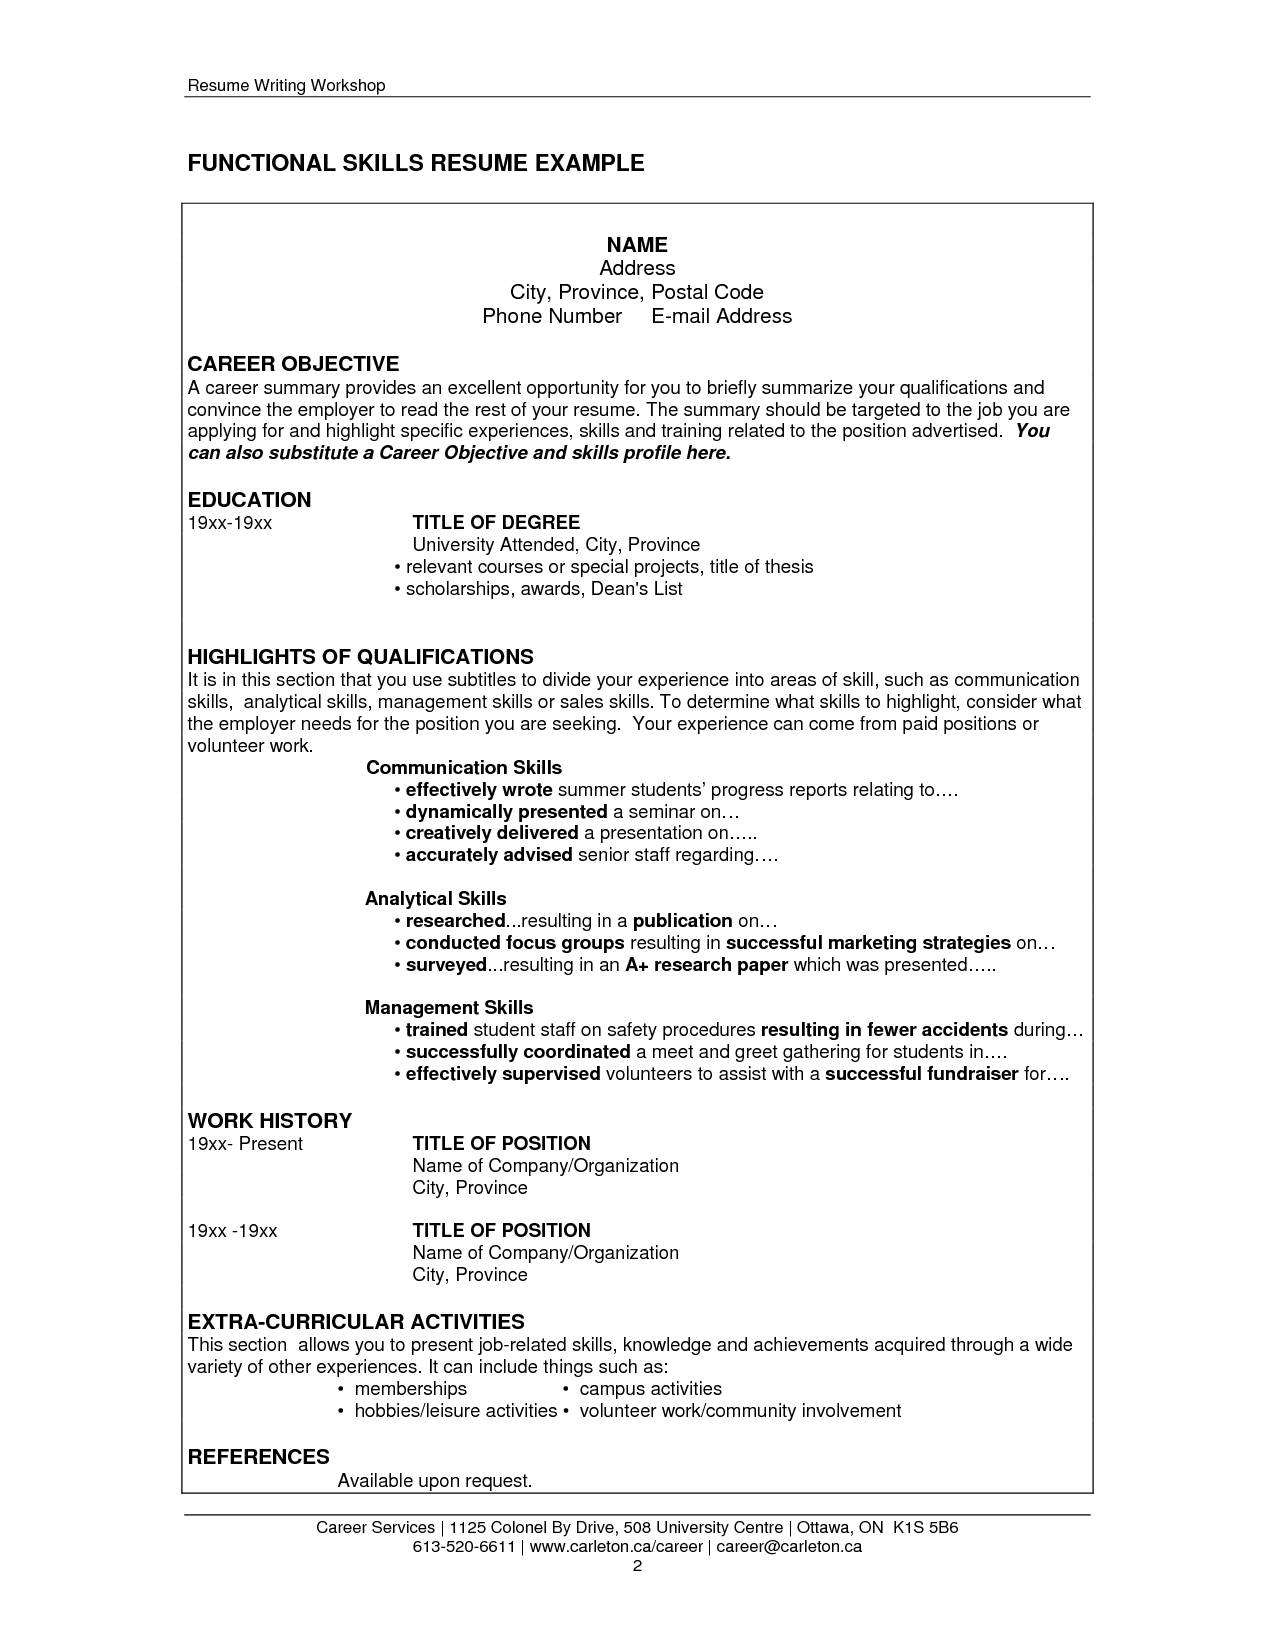 Resume Sample With Skills Resume Sample Of Skills And Abilities Resume Sample Of Skills And 2